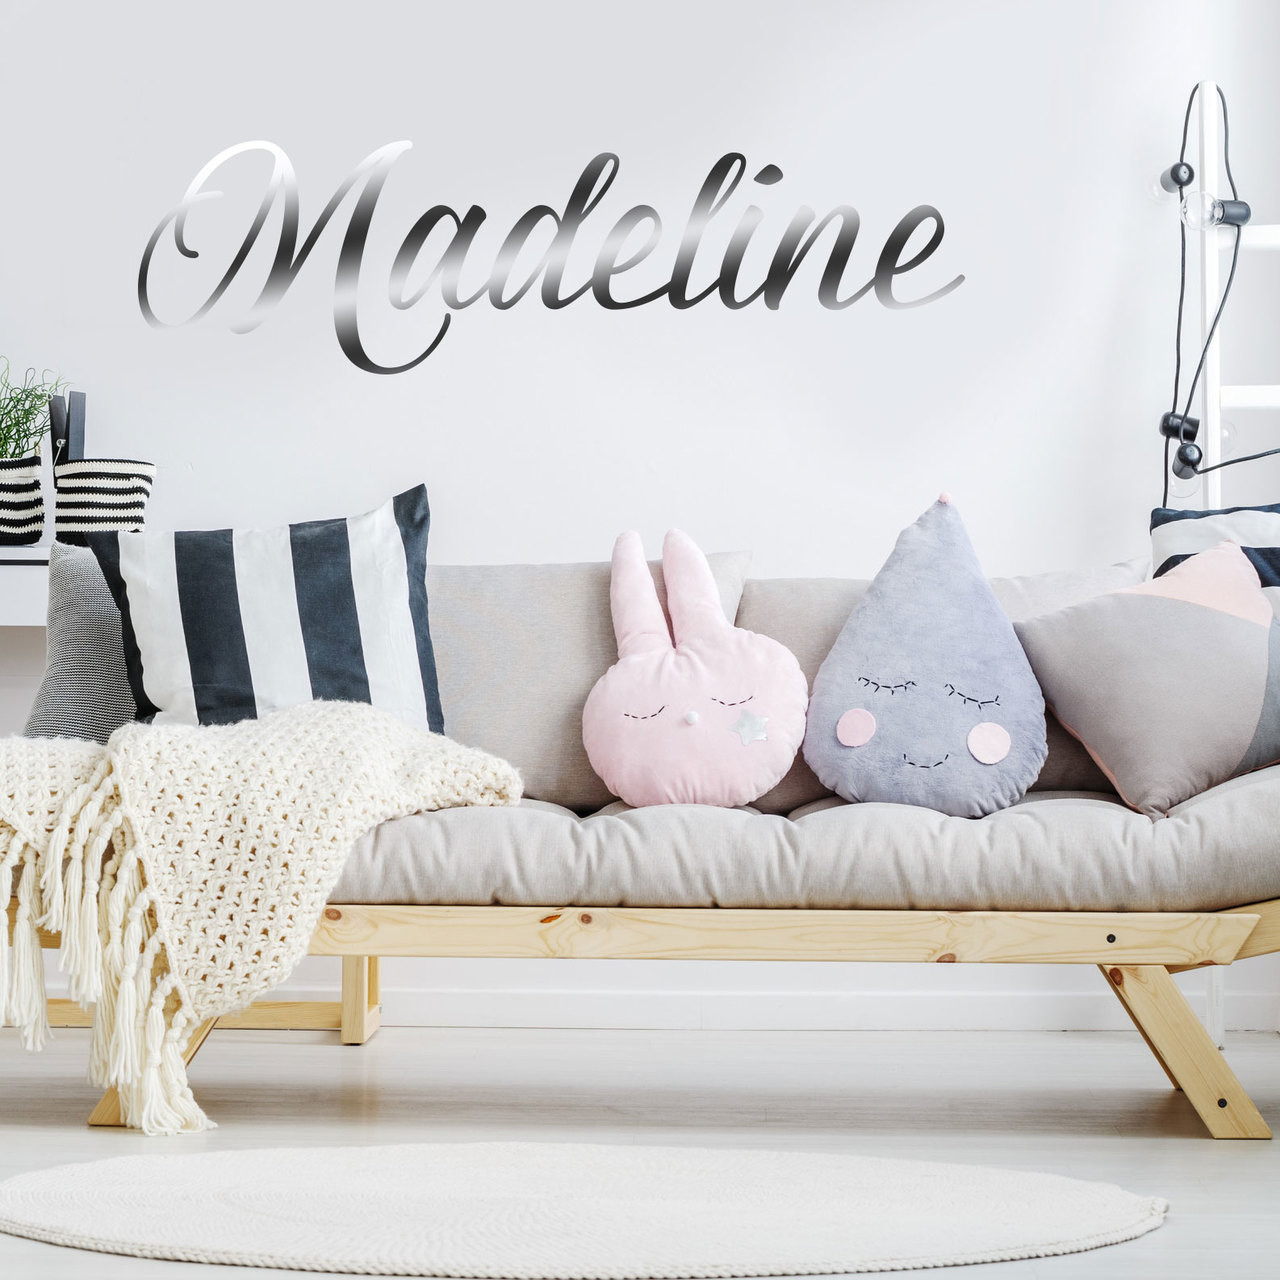 Custom name wall decal in font 2